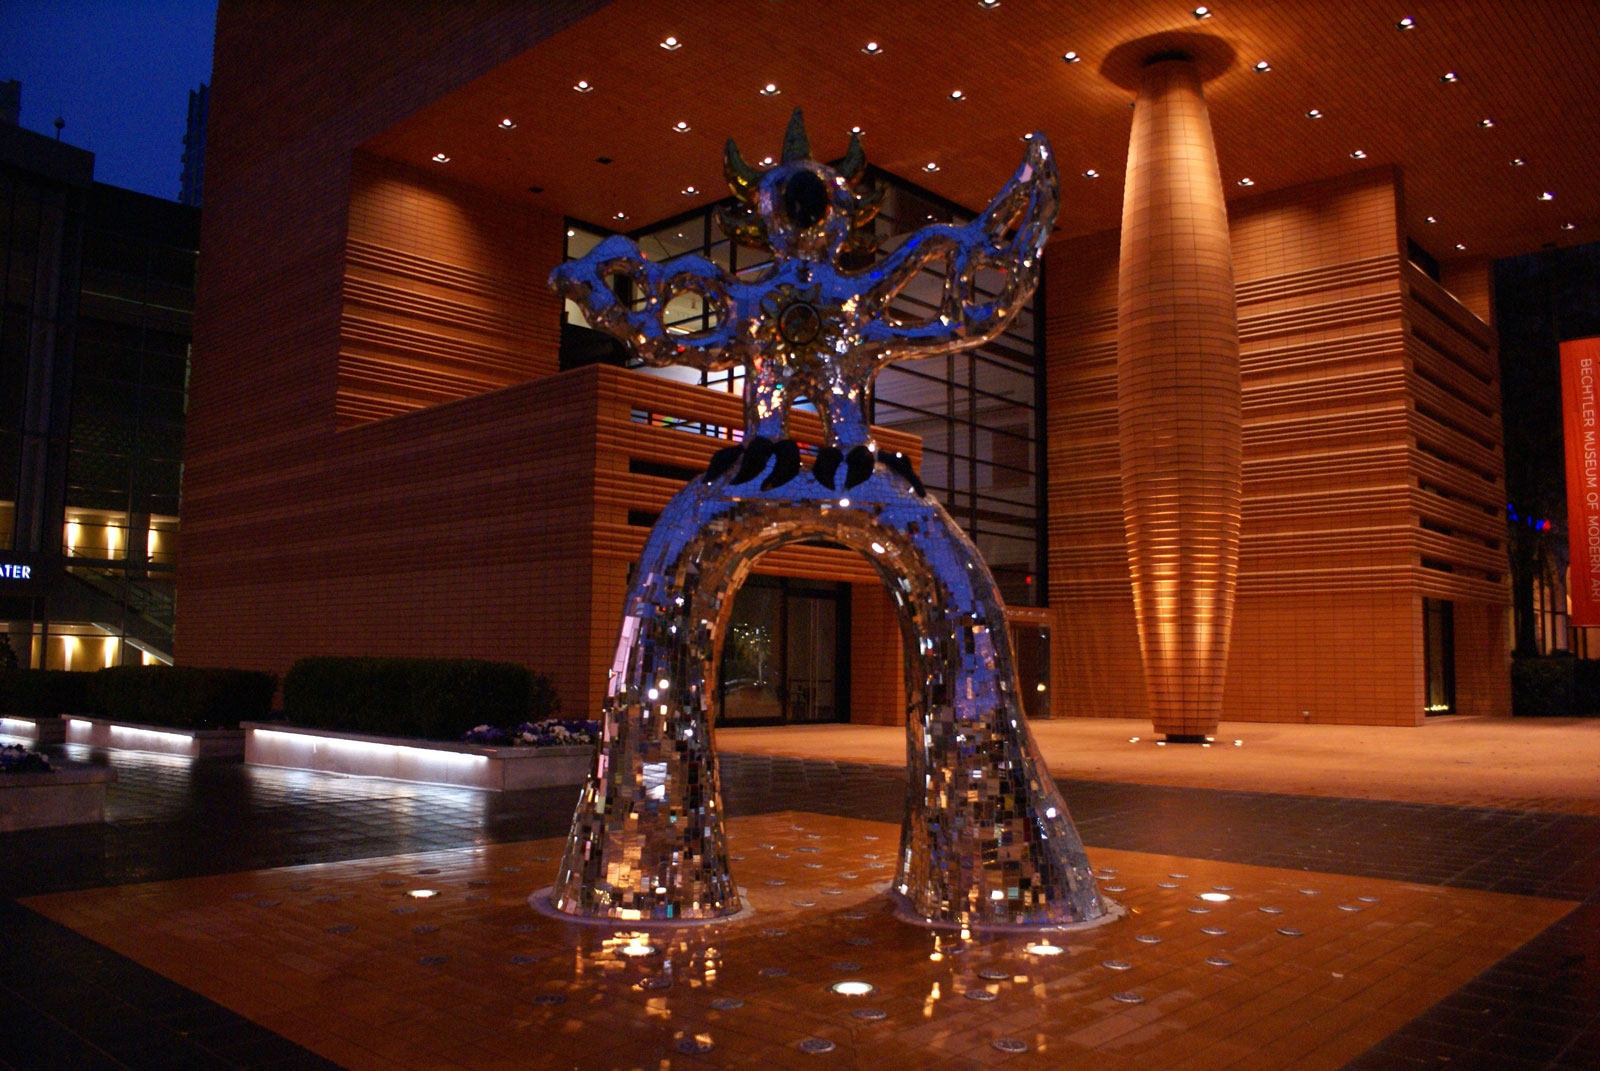 The Firebird stands outisde of the Bechtler Museum of Modern Art in Uptown Charlotte